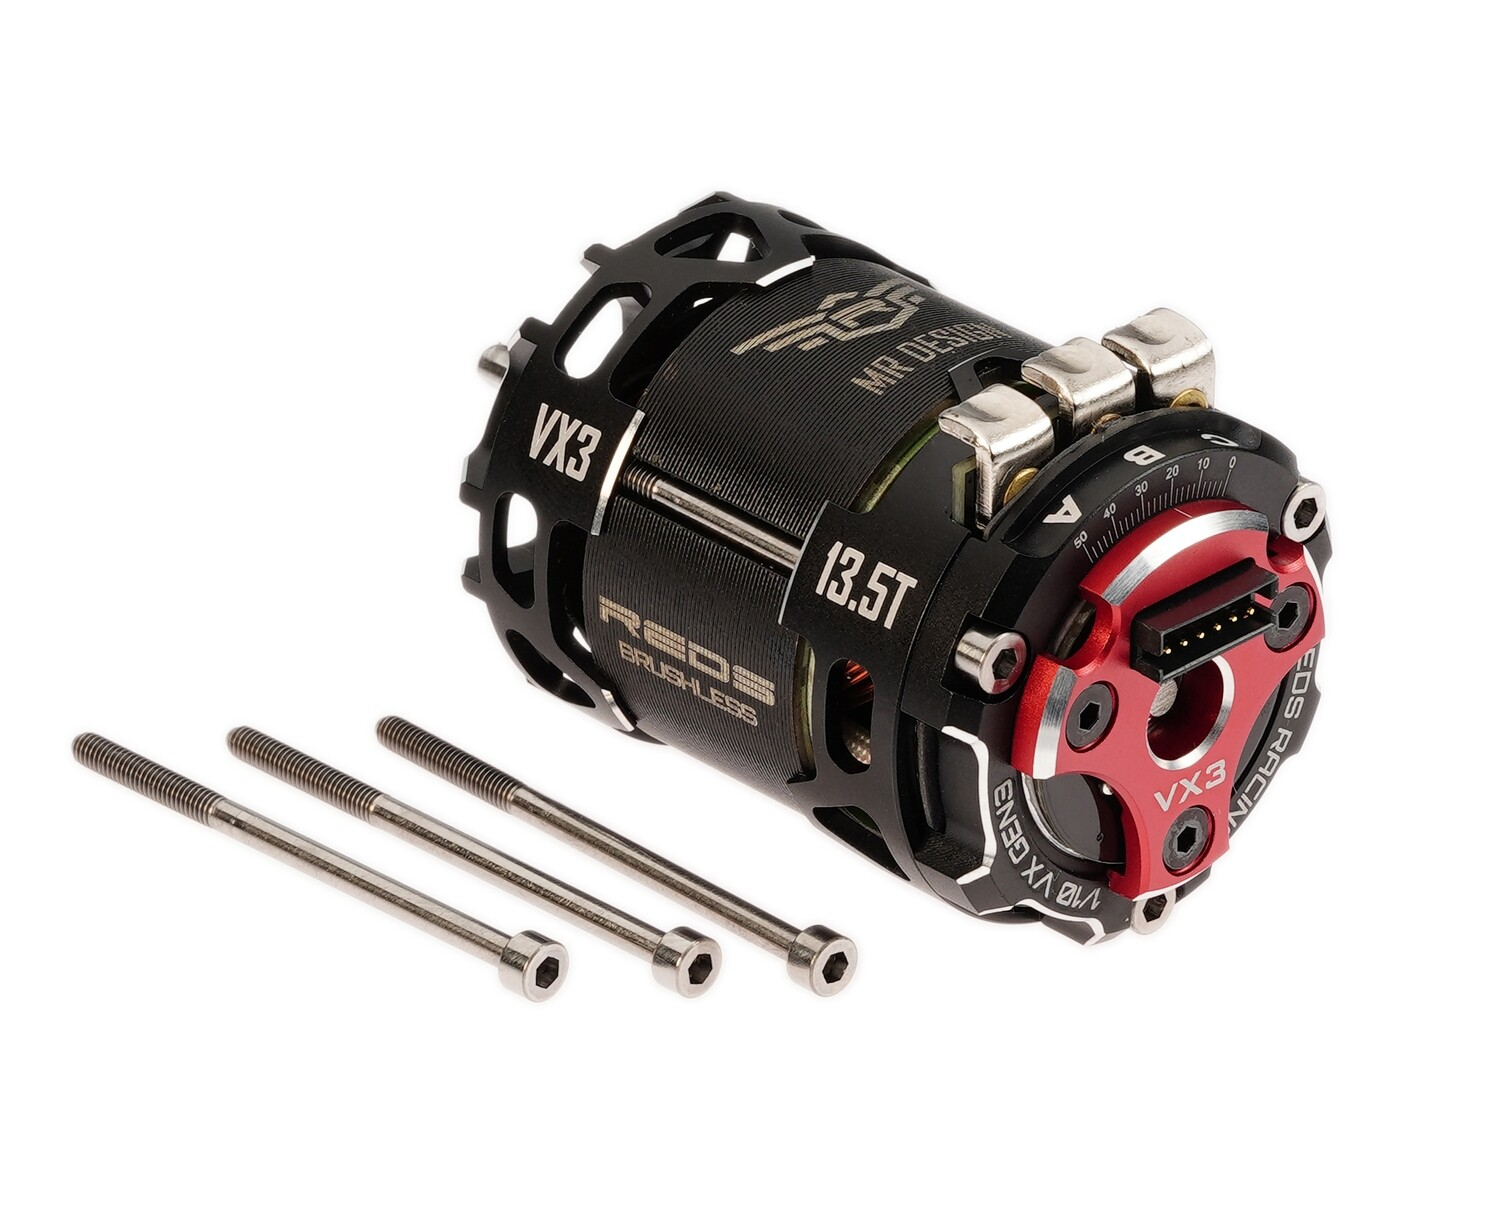 BRUSHLESS MOTOR REDS VX3 540 4.5T 2 POLE SENSORED FACTORY SELECTED